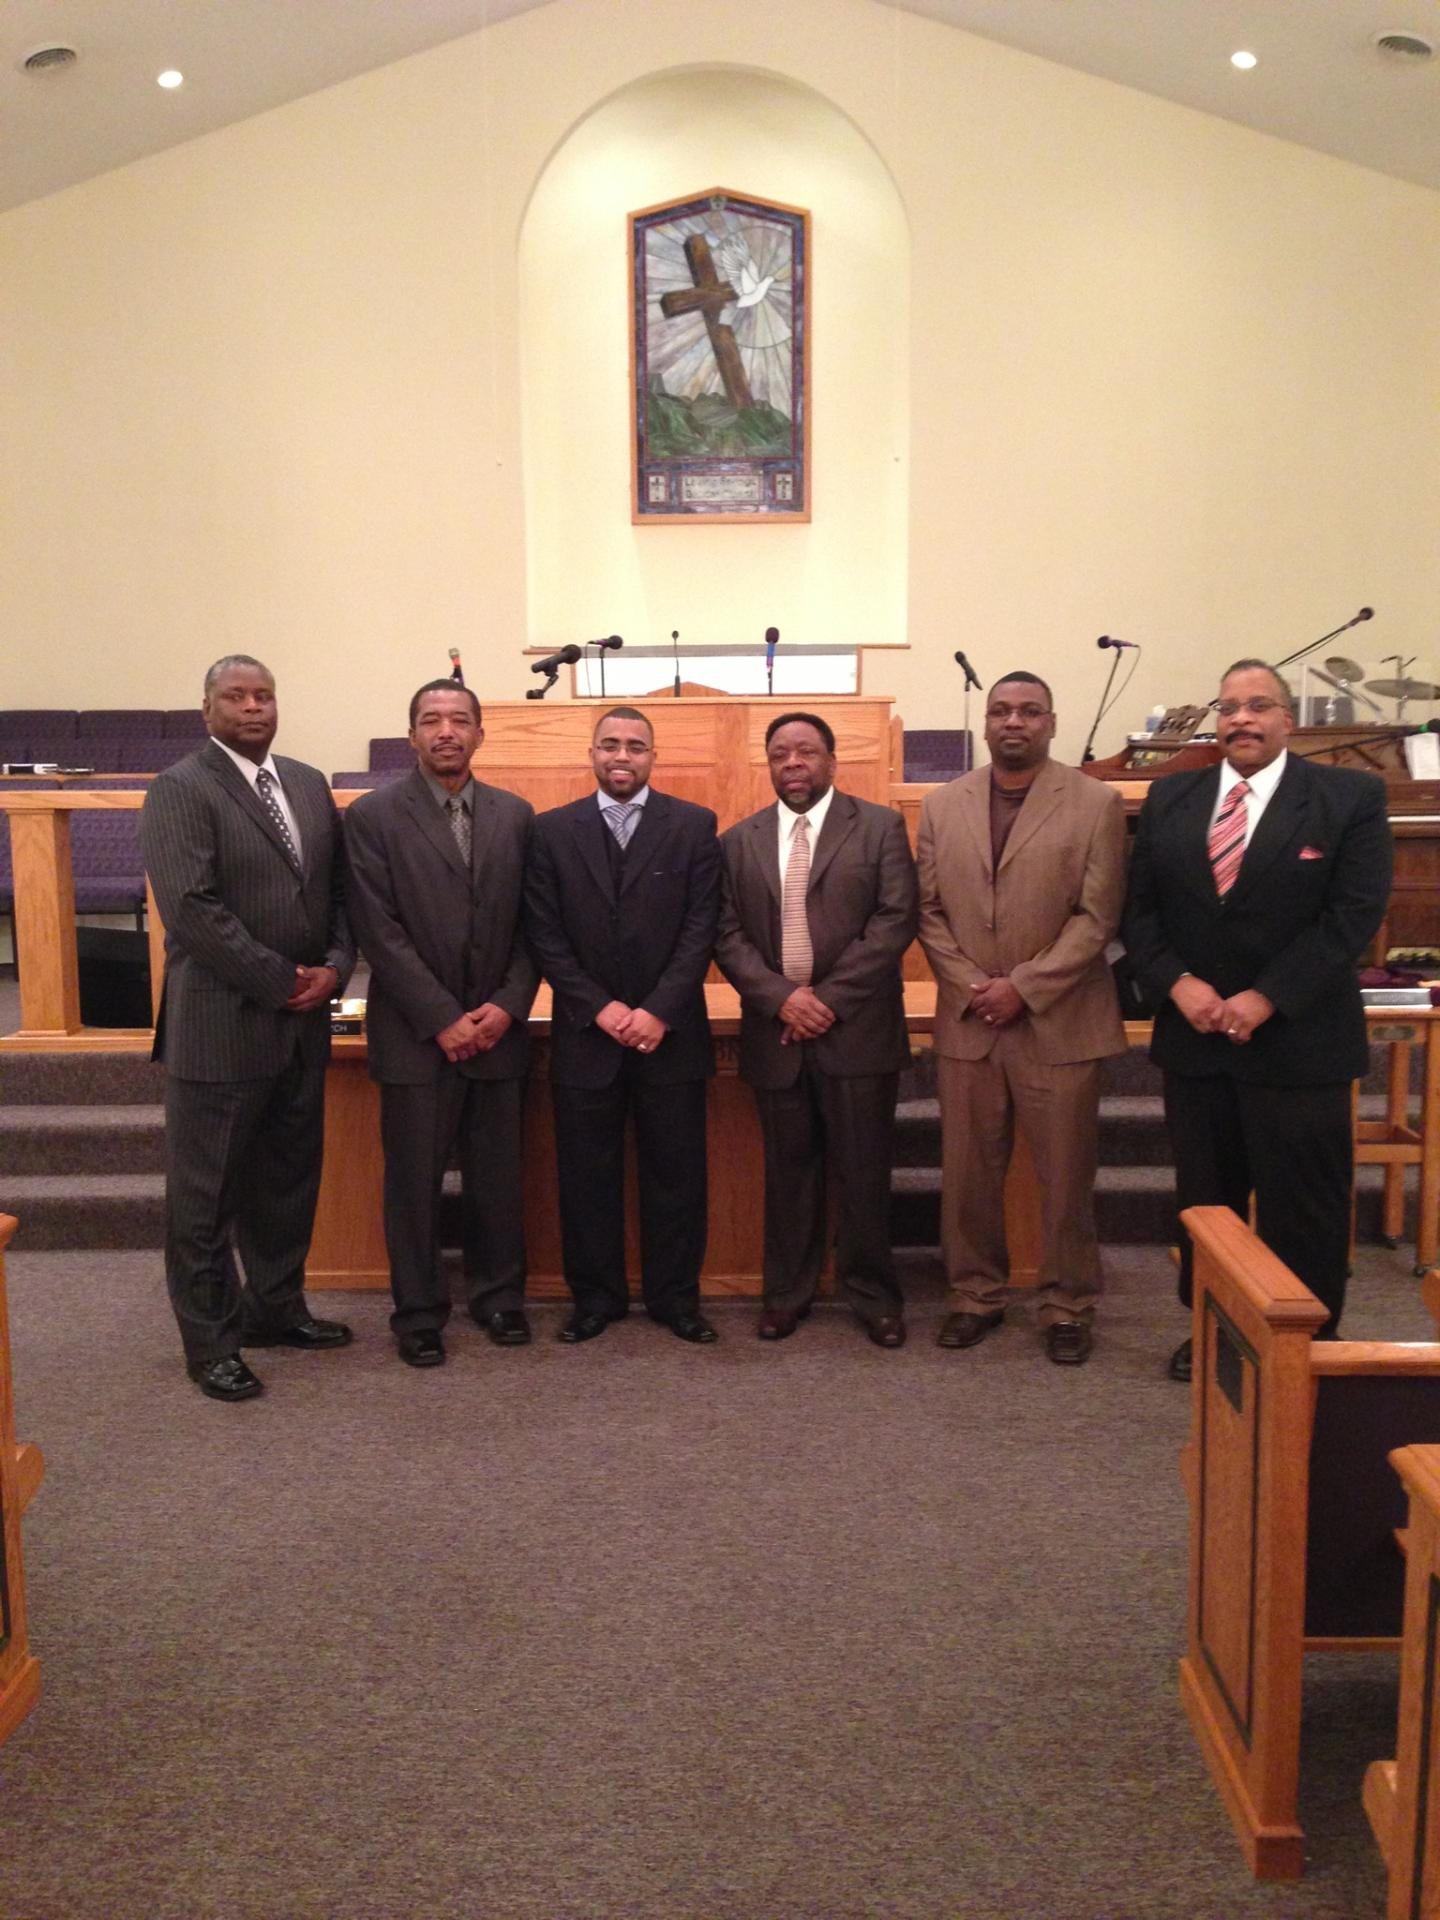 Pastor with Deacons of The Church